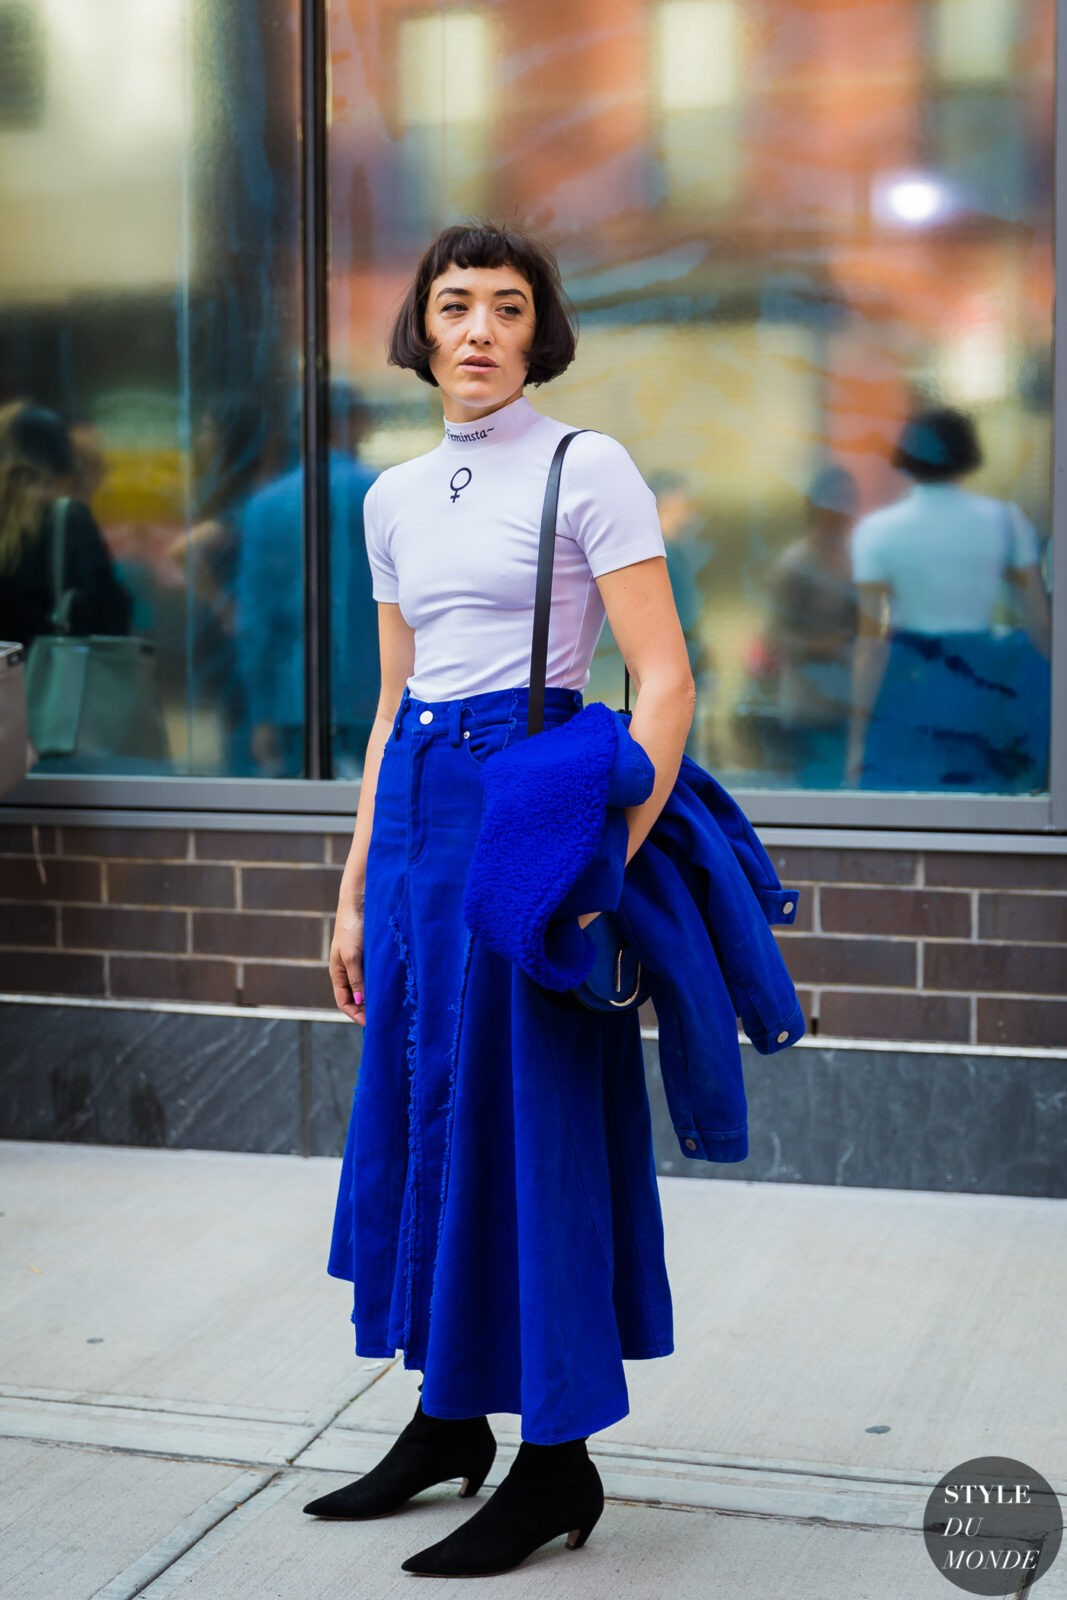 Mia Moretti denim skirt edit seven stylebook